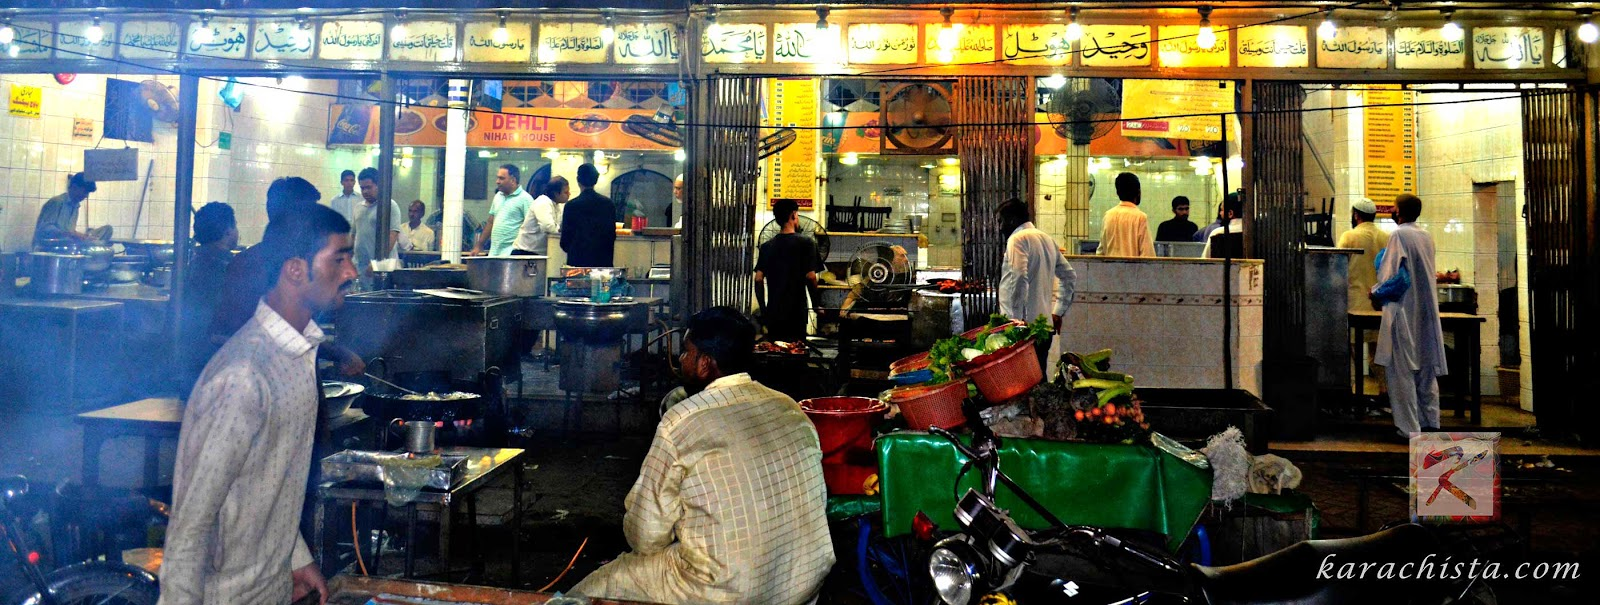 Waheed Kebab House off Burns Road in Karachi